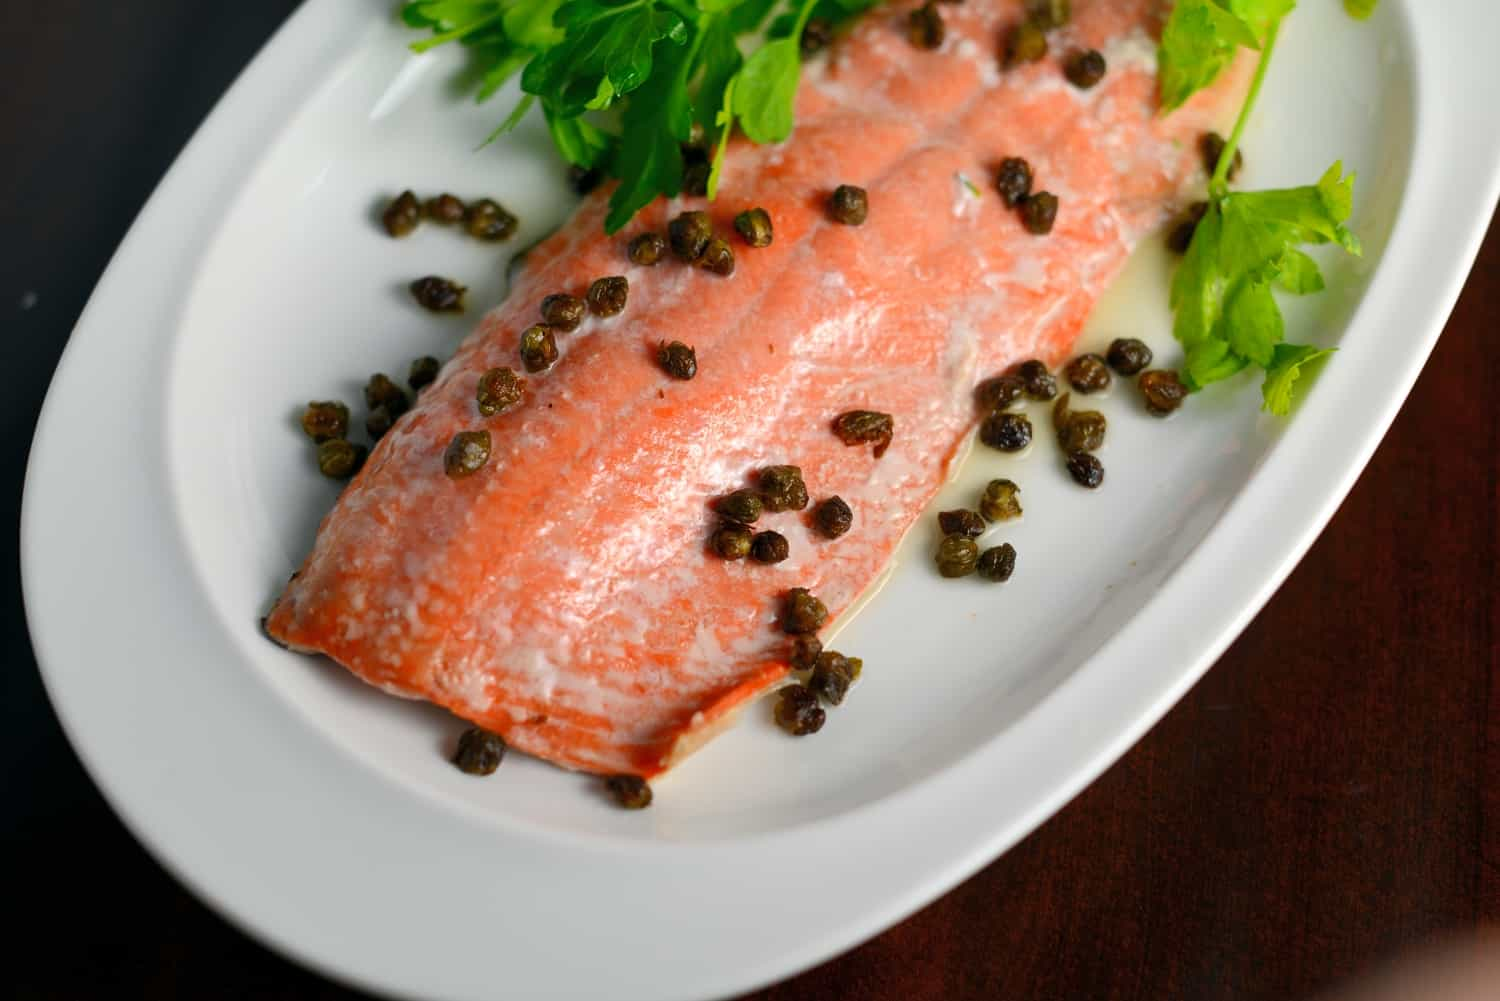 Crispy Caper Lemon Salmon is one of the best healthy salmon recipes. This lemon salmon is quick, easy and healthy! Crispy capers add texture sophistication to this easy weeknight meal.